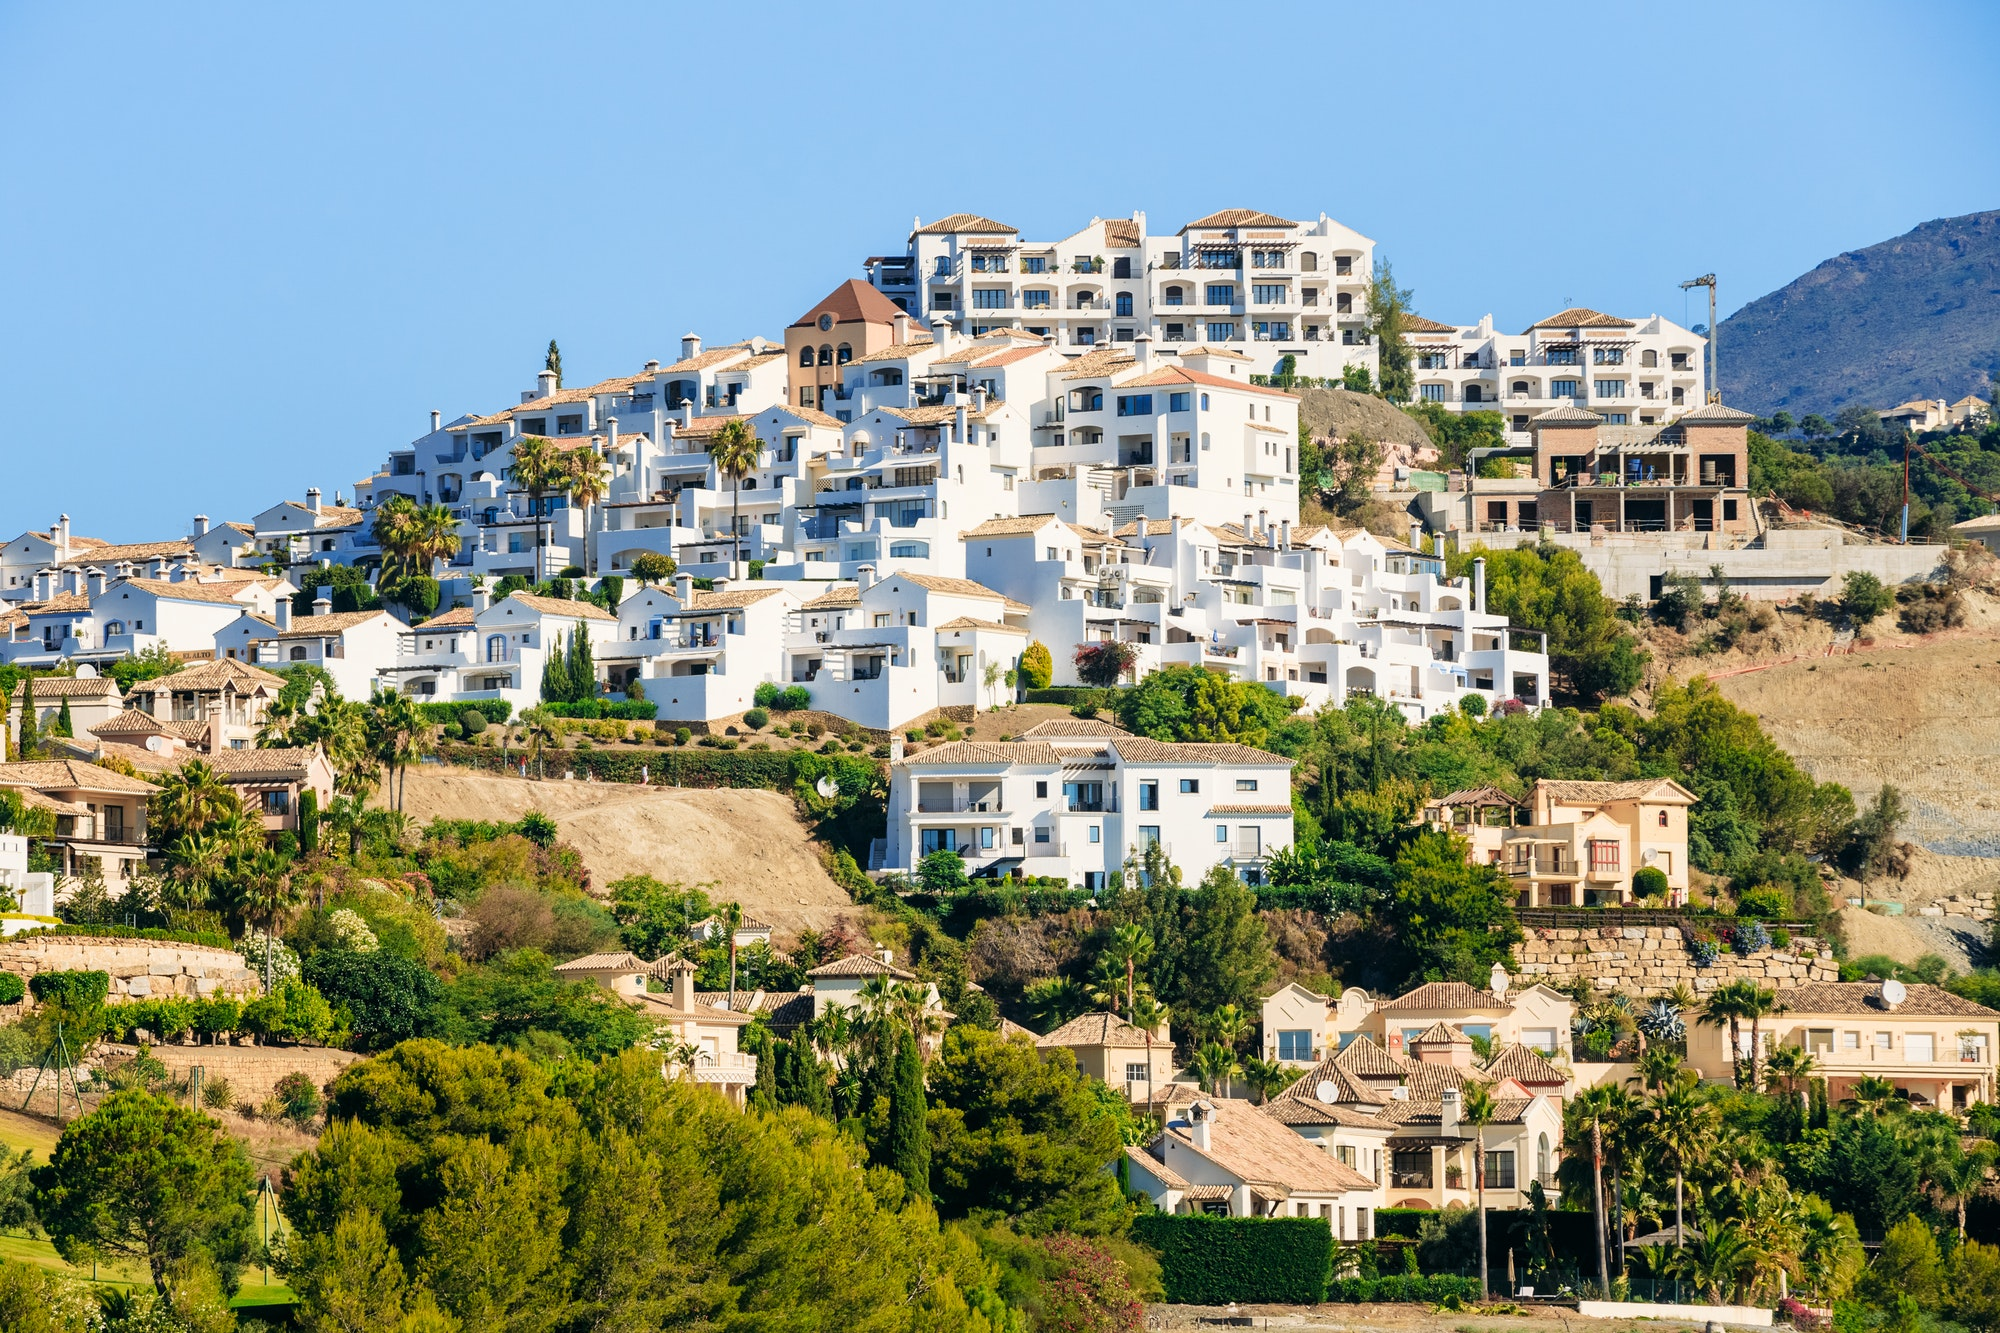 Andalusia saw 8,882 home sales in February